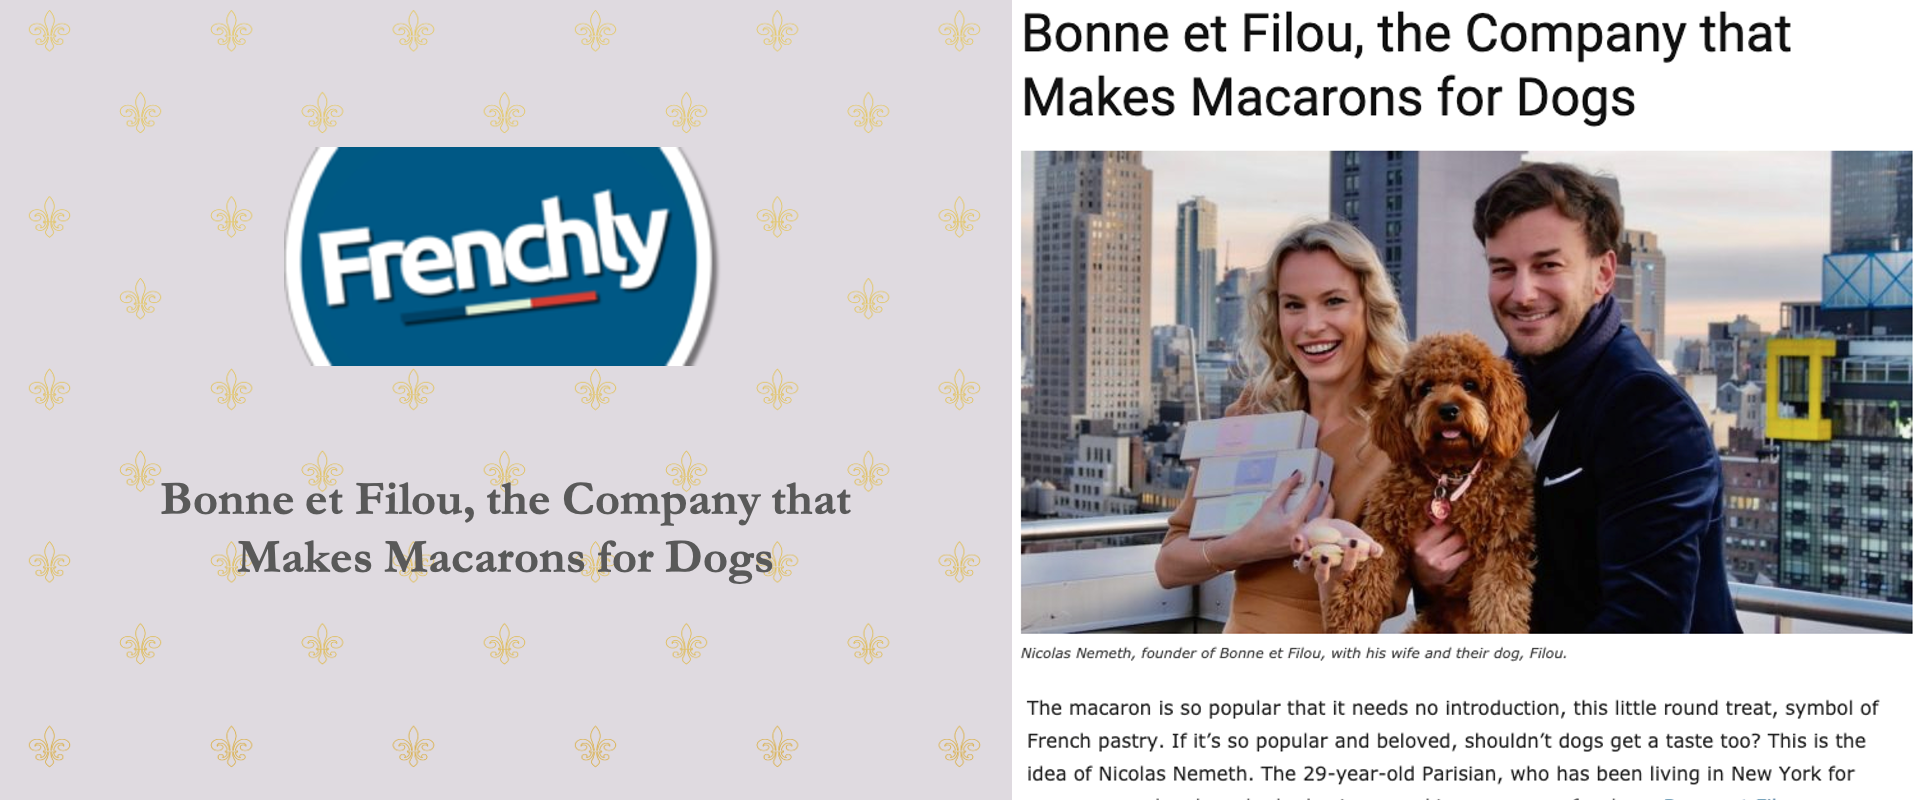 Frenchly Bonne et Filou Dog Macarons New York Brand French Royalty Macaroons France Paris Pup Puppy Gourmet Treats Handmade Snacks